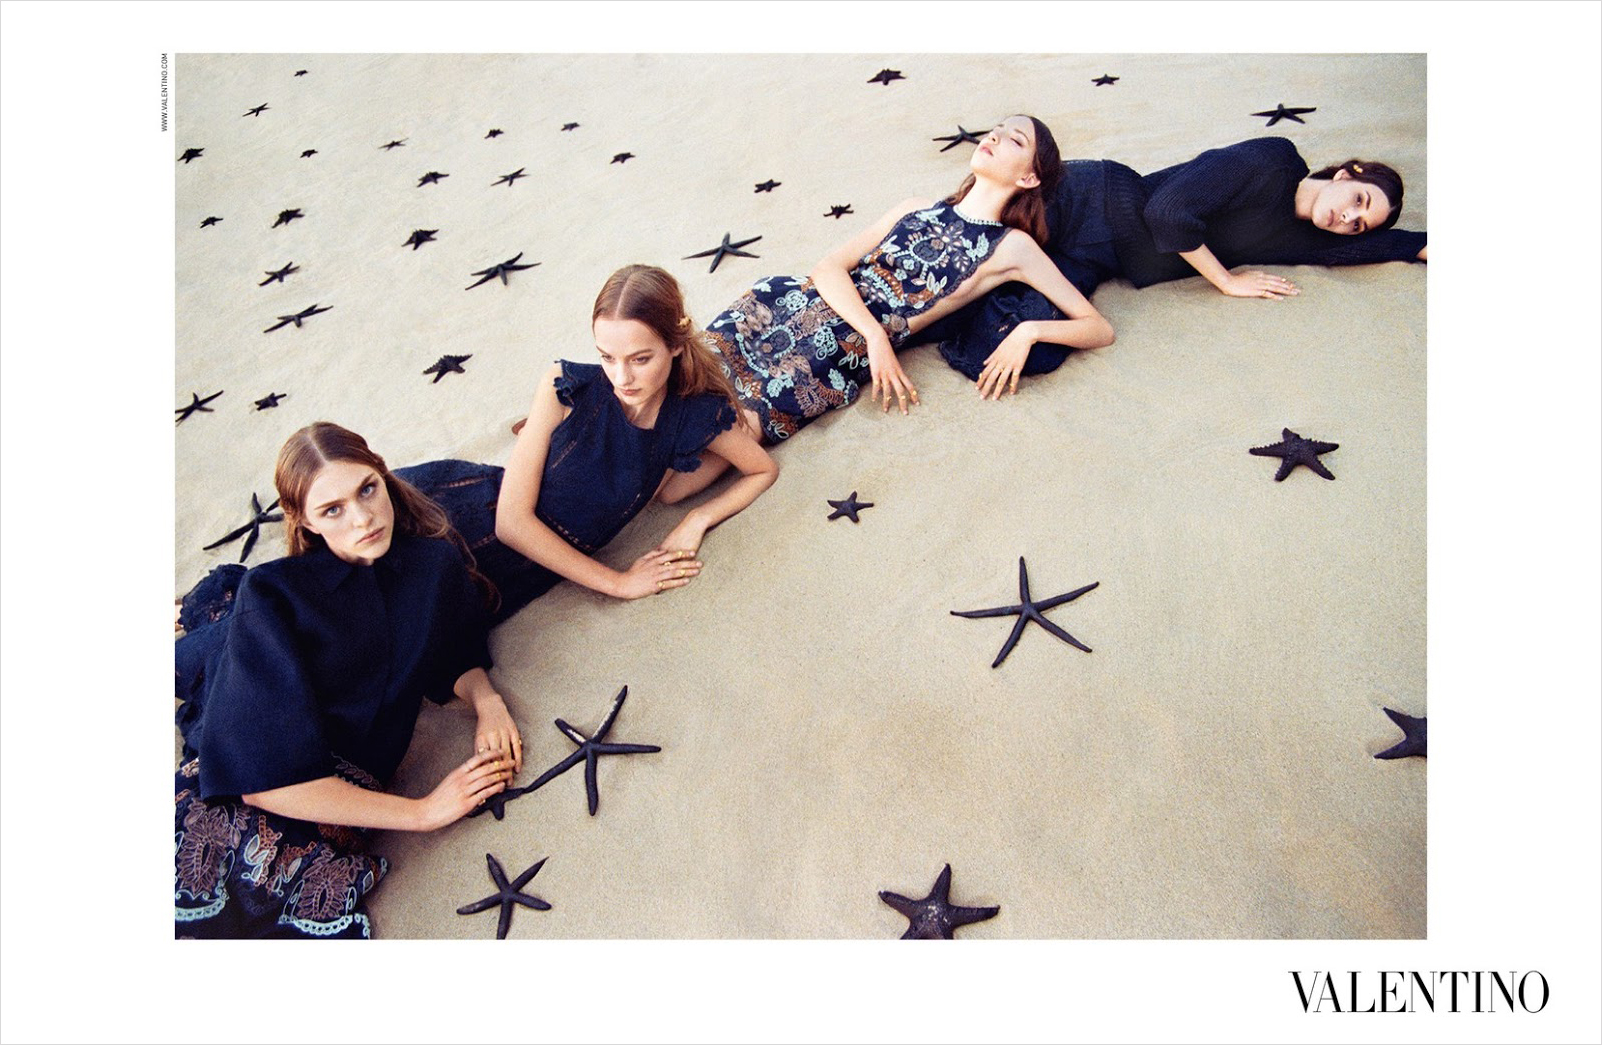 valentinospring-2015-ad-campaign-the-impression-15